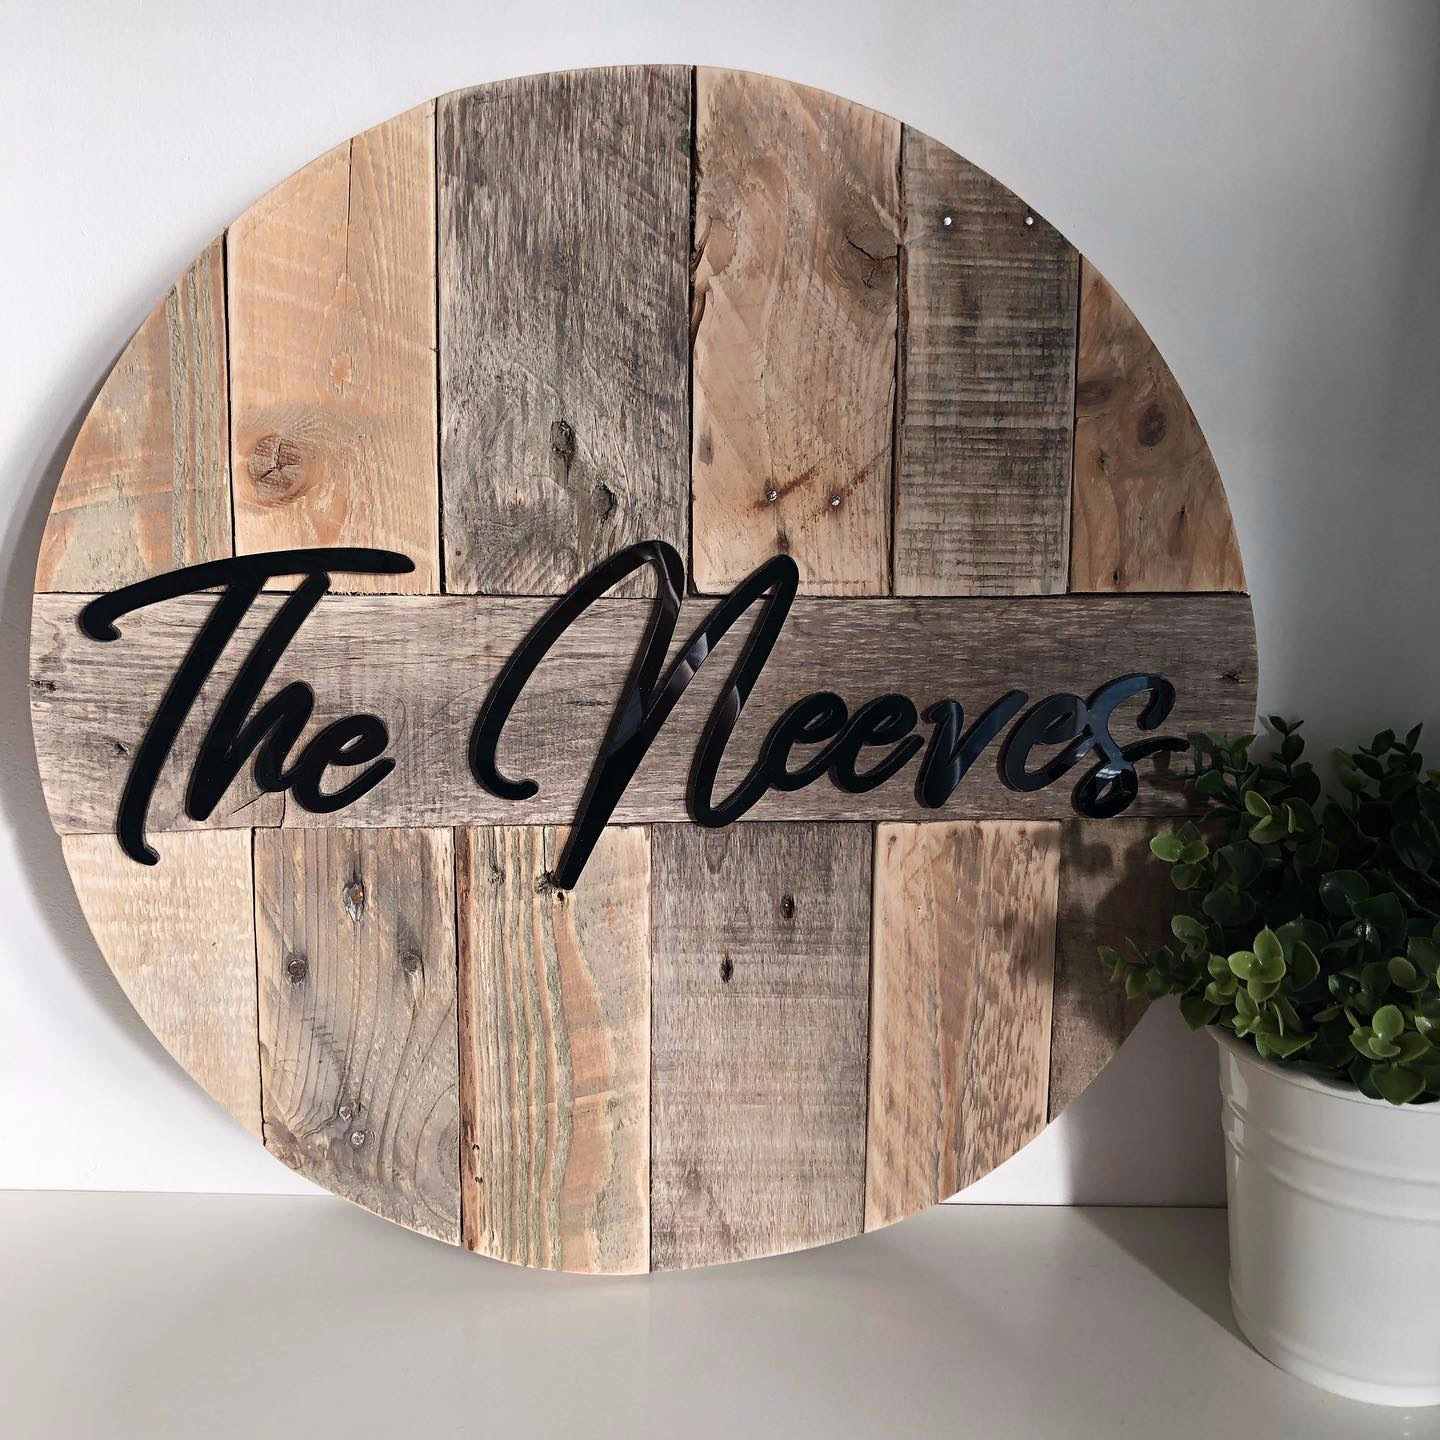 Black laser cut lettering on reclaimed pallet wood backing